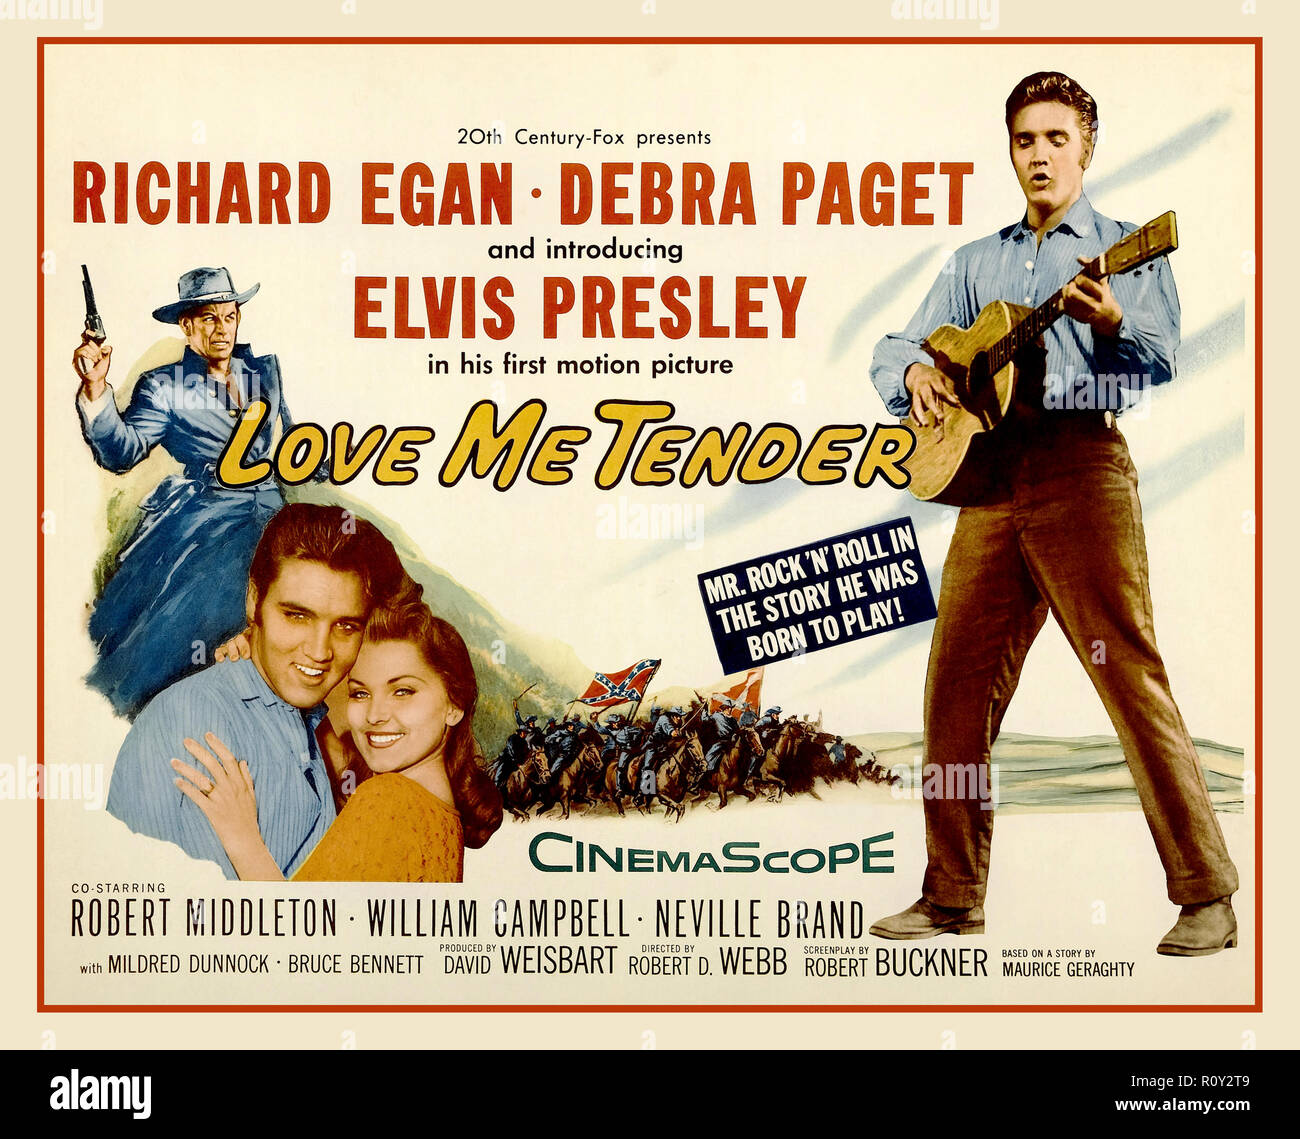 ELVIS PRESLEY  'Love me Tender' vintage movie poster 'Love Me Tender' is a 1956 song recorded by Elvis Presley and published by Elvis Presley Music from the 20th Century Fox film of the same name. The words and music are credited to Ken Darby under the pseudonym 'Vera Matson', the name of his wife, and Elvis Presley. The RCA Victor recording by Elvis Presley was no. 1 on both the Billboard and Cashbox charts in 1956. - Stock Image